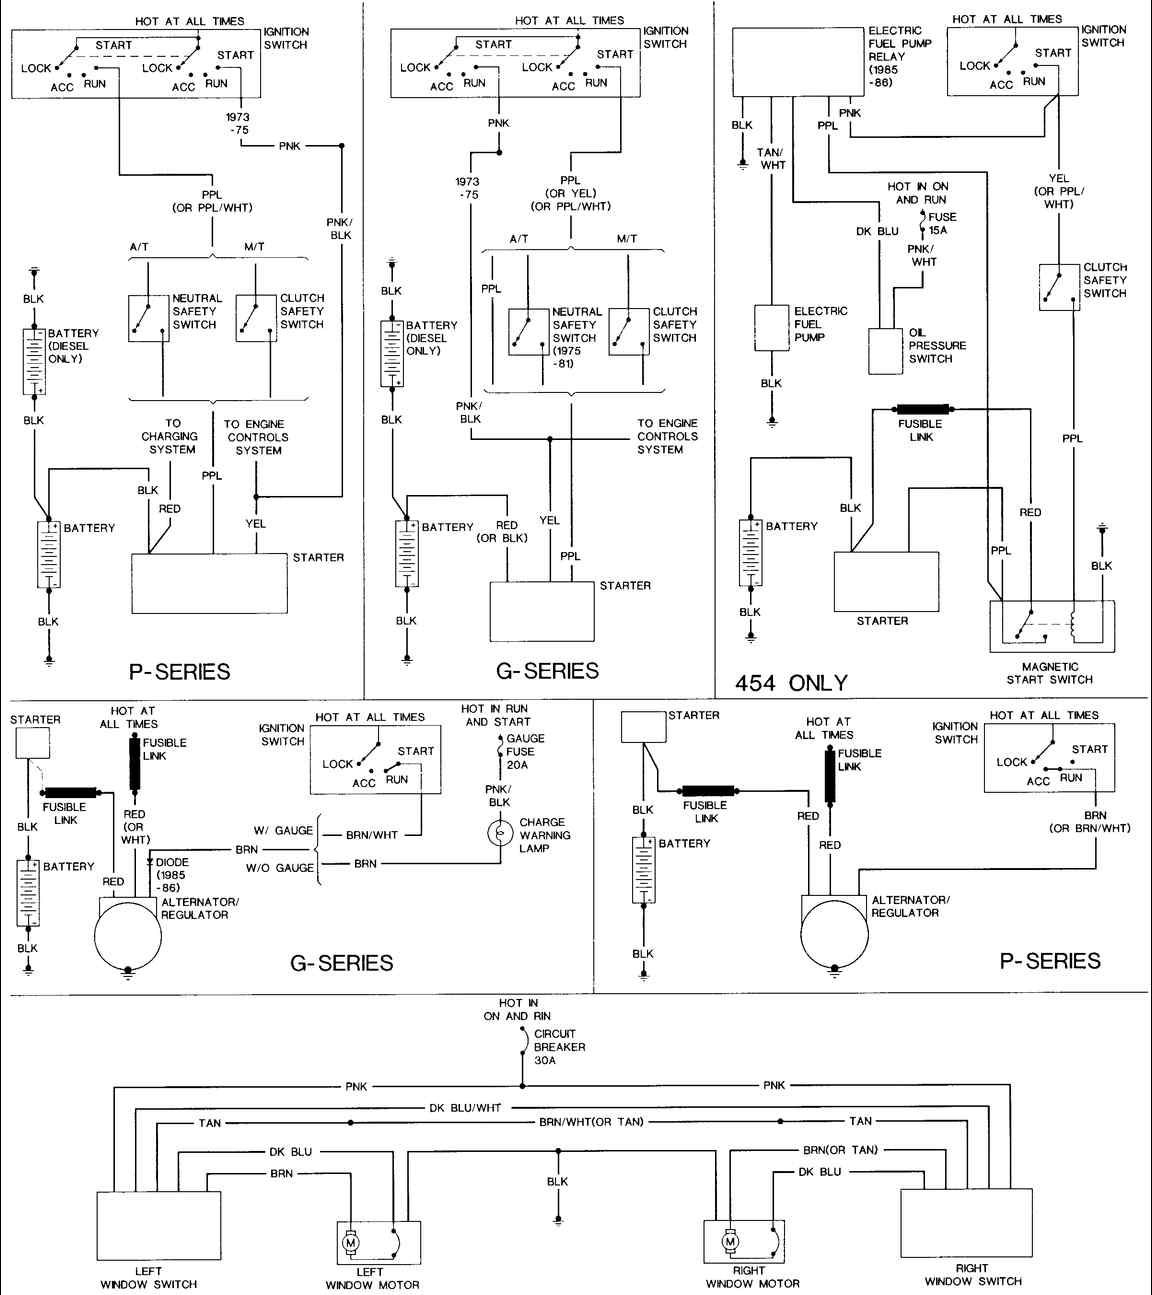 1988 Chevy Truck Alternator Wiring Diagram Will Be 79 Cheyenne Starter 85 Van The Steering Column Rh Pinterest Com 1990